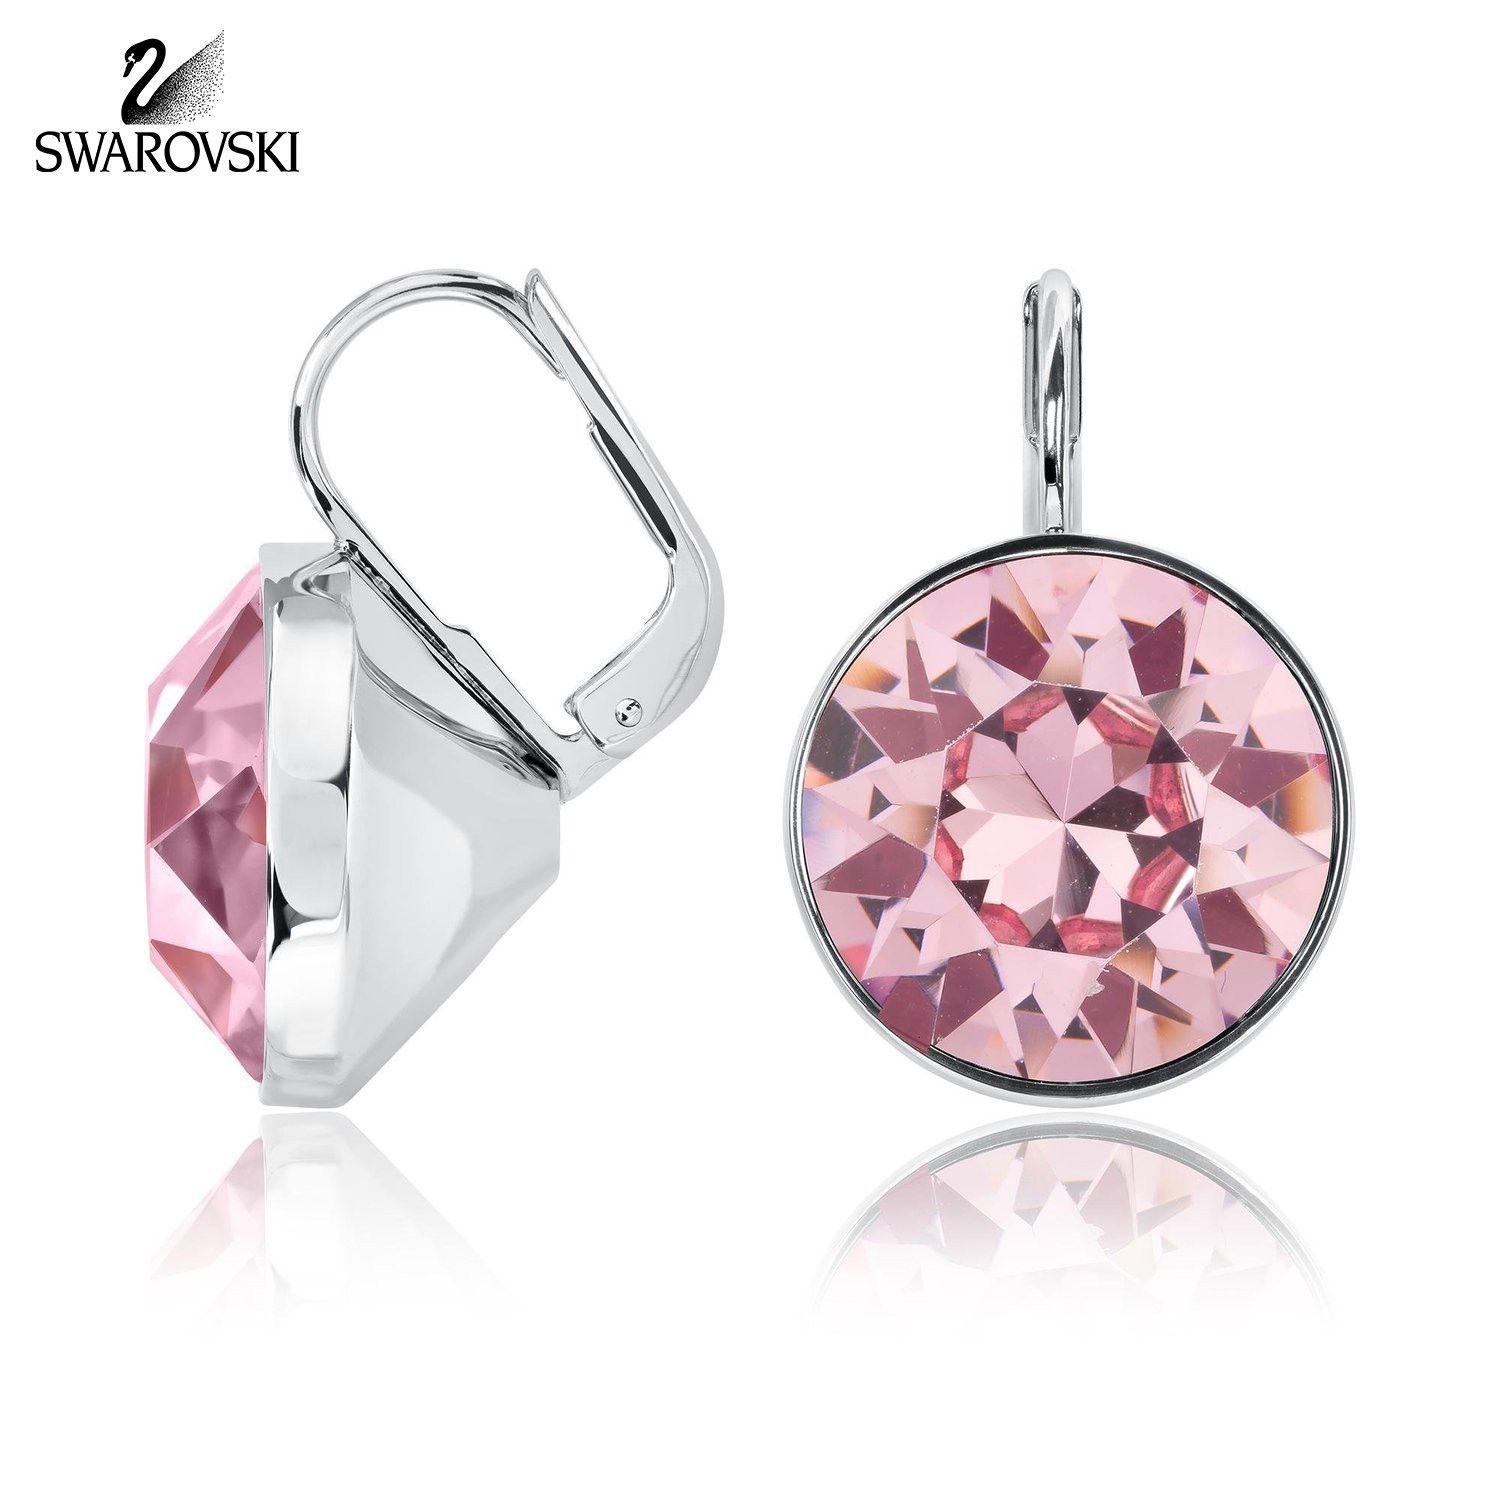 3c756b223f8f84 Swarovski Pink Crystal BELLA Mini Rose Pierced Earrings Rhodium #5007739